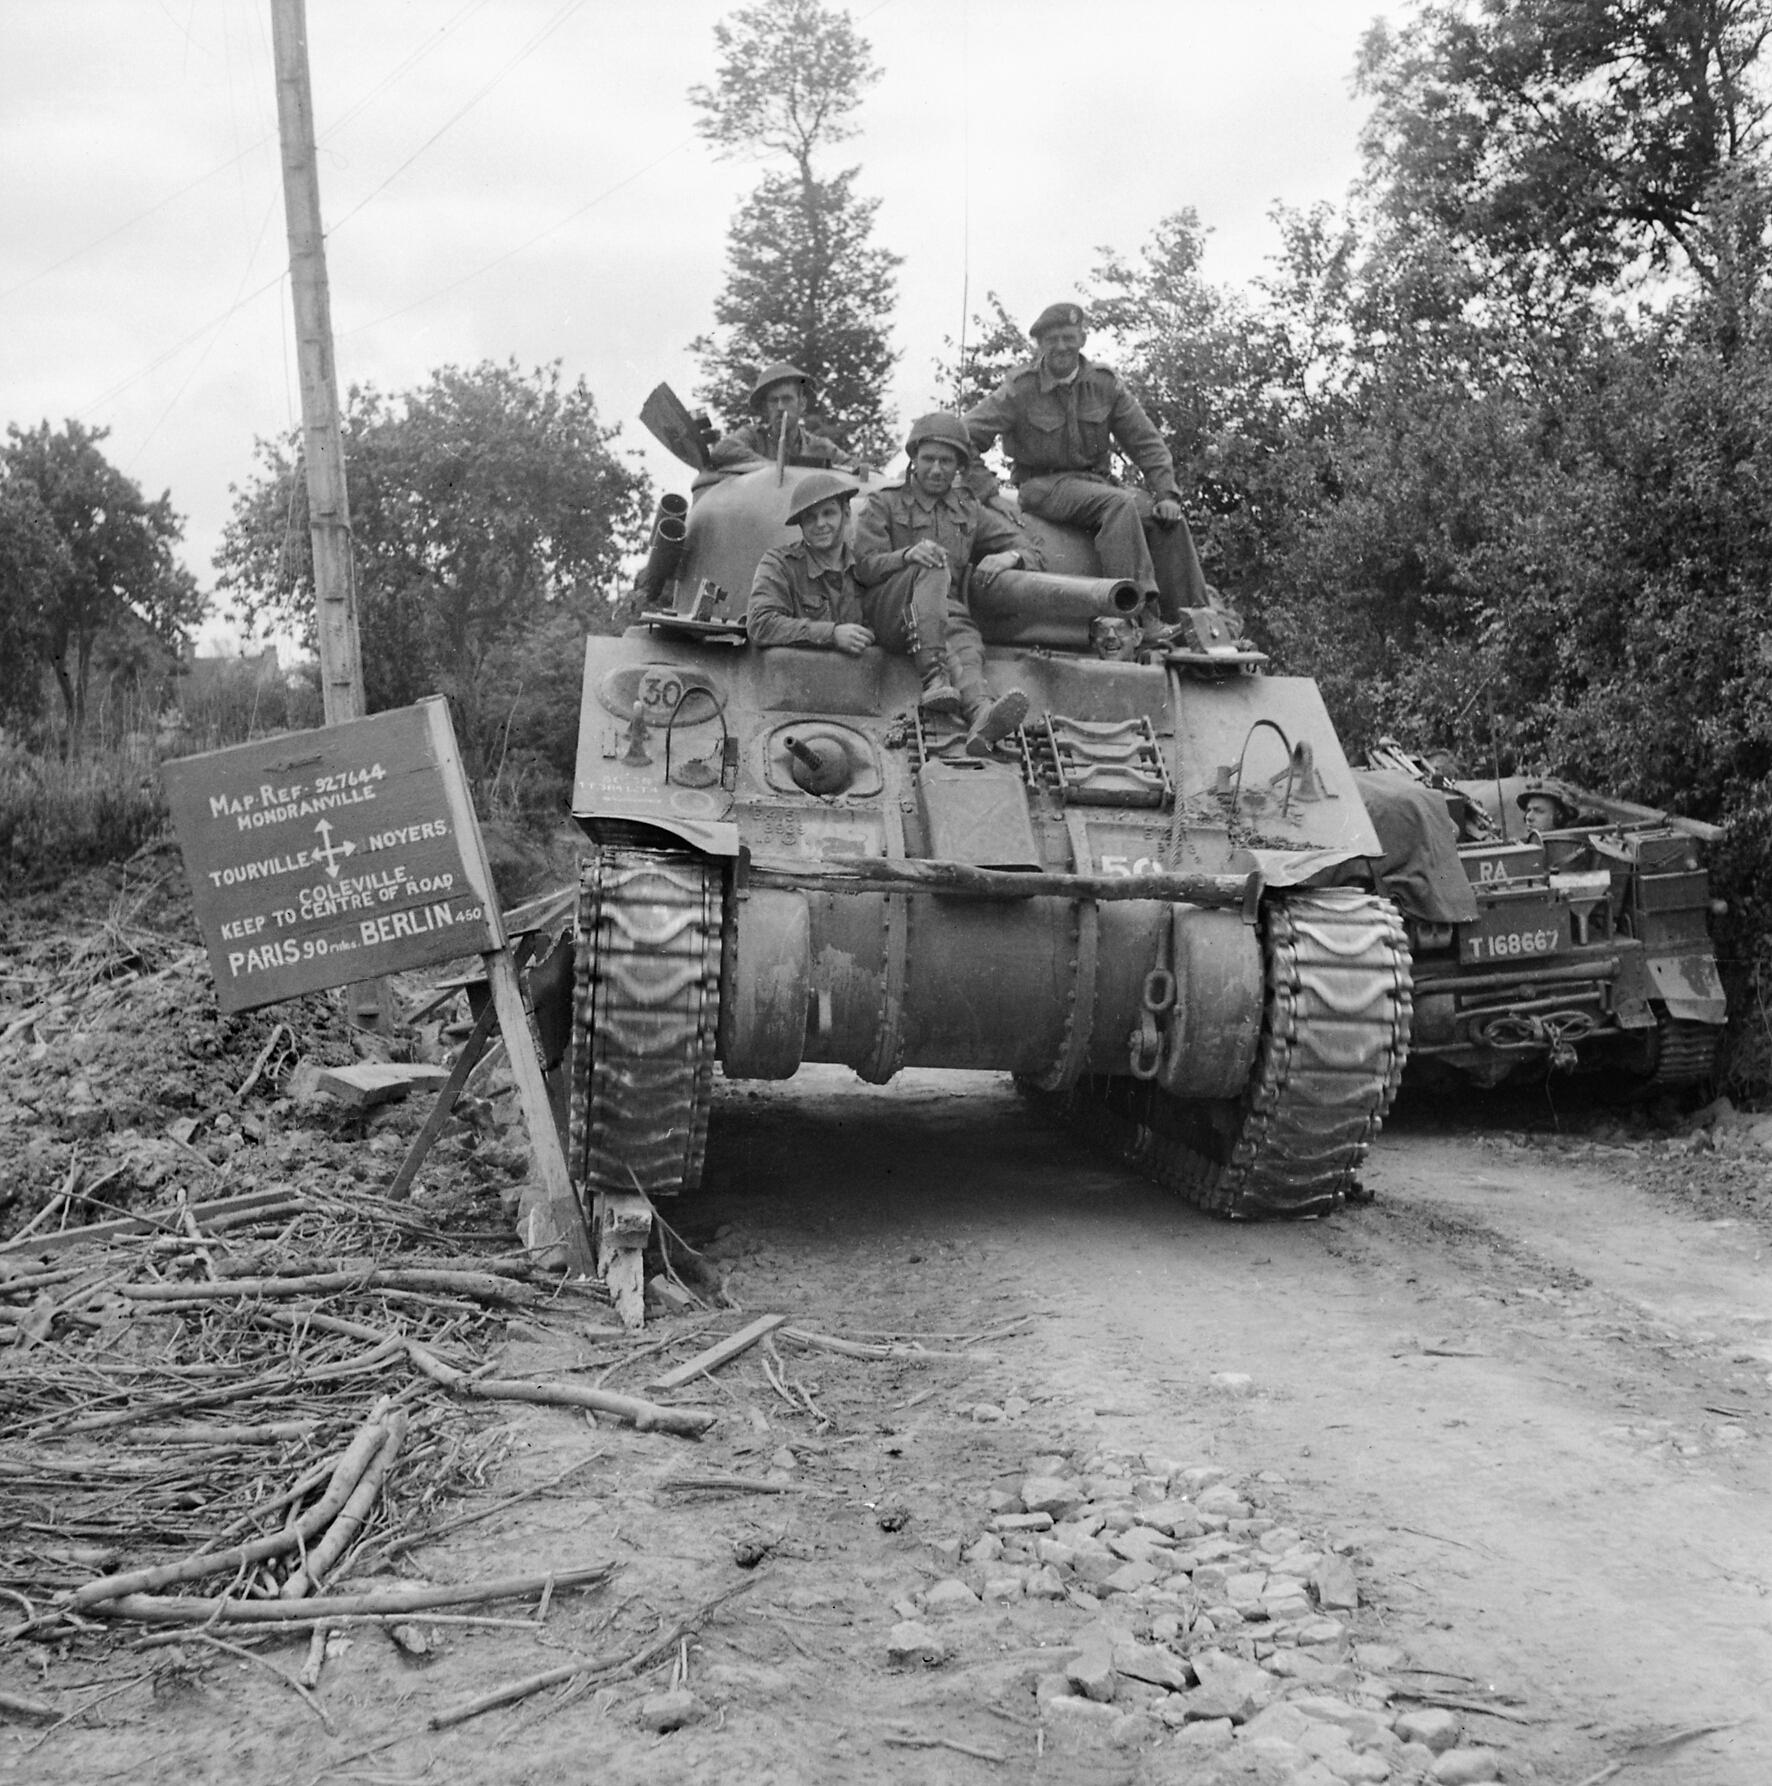 2nd Fife and Forfar Yeomanry by Qhorin Sherman_tank_of_29th_Armoured_Brigade,_11th_Armoured_Division,_in_Normandy,_11_July_1944._B6980